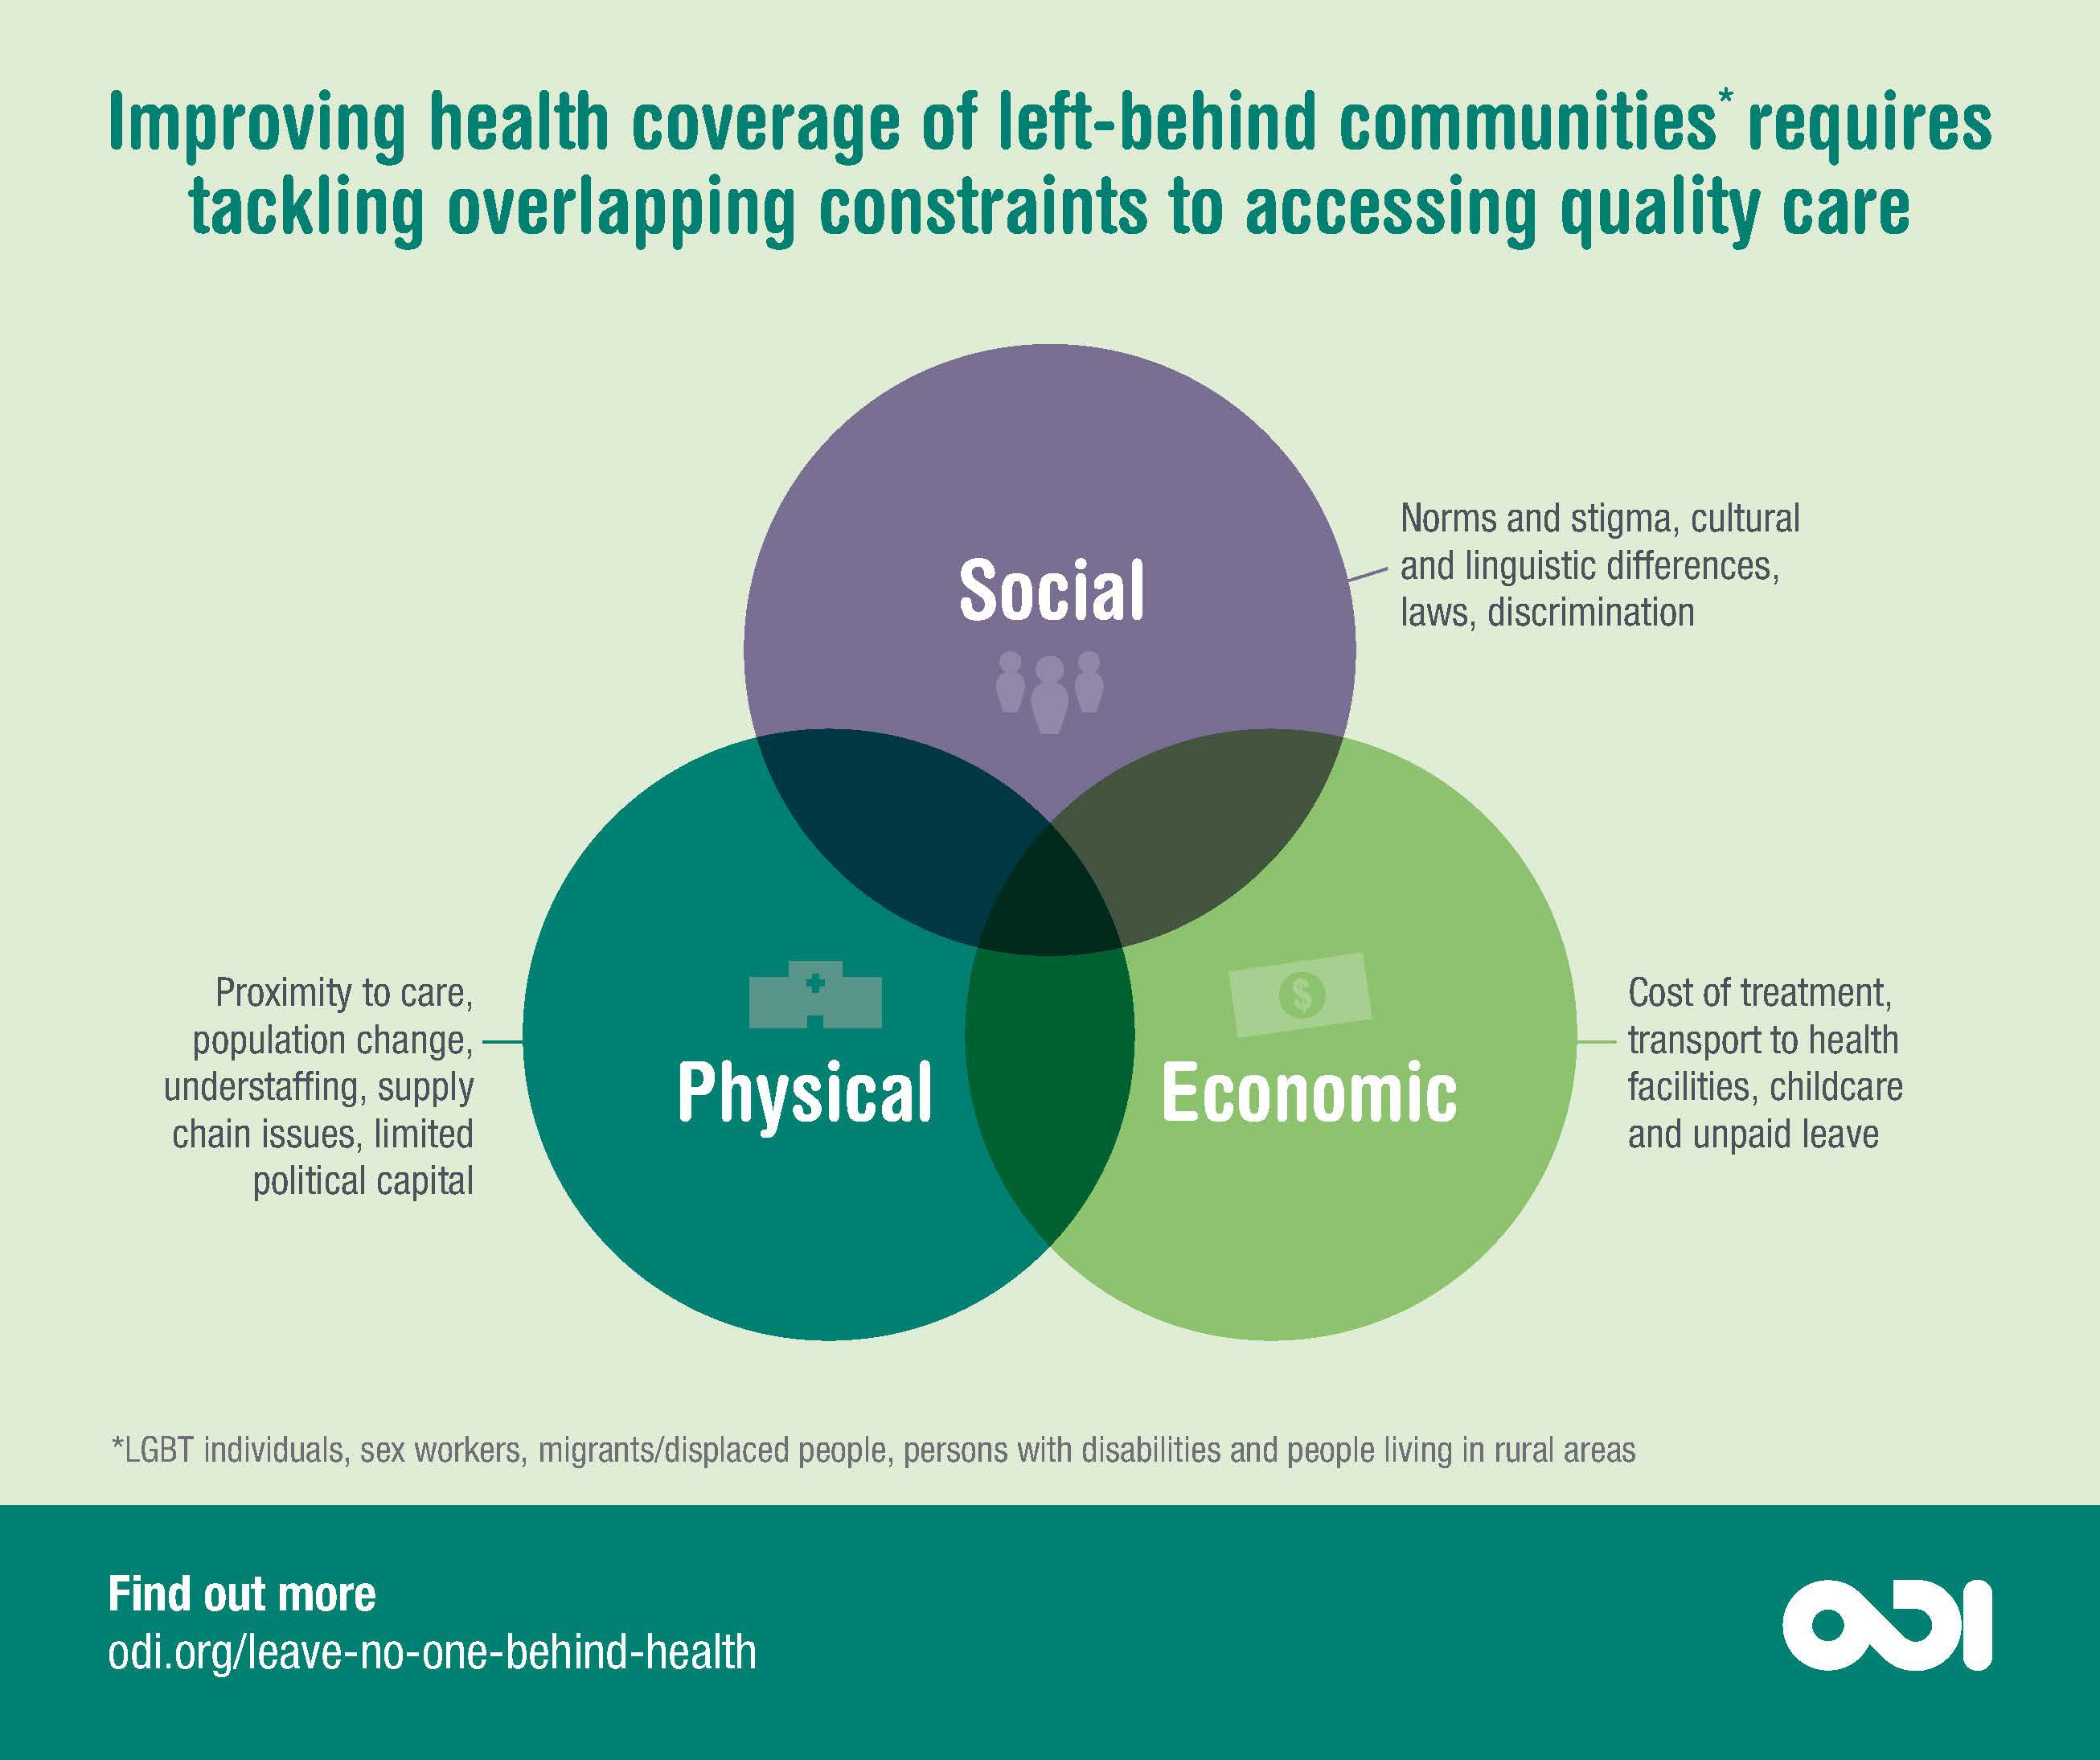 Improving health coverage of left-behind communities requires tackling overlapping constraints to accessing quality care